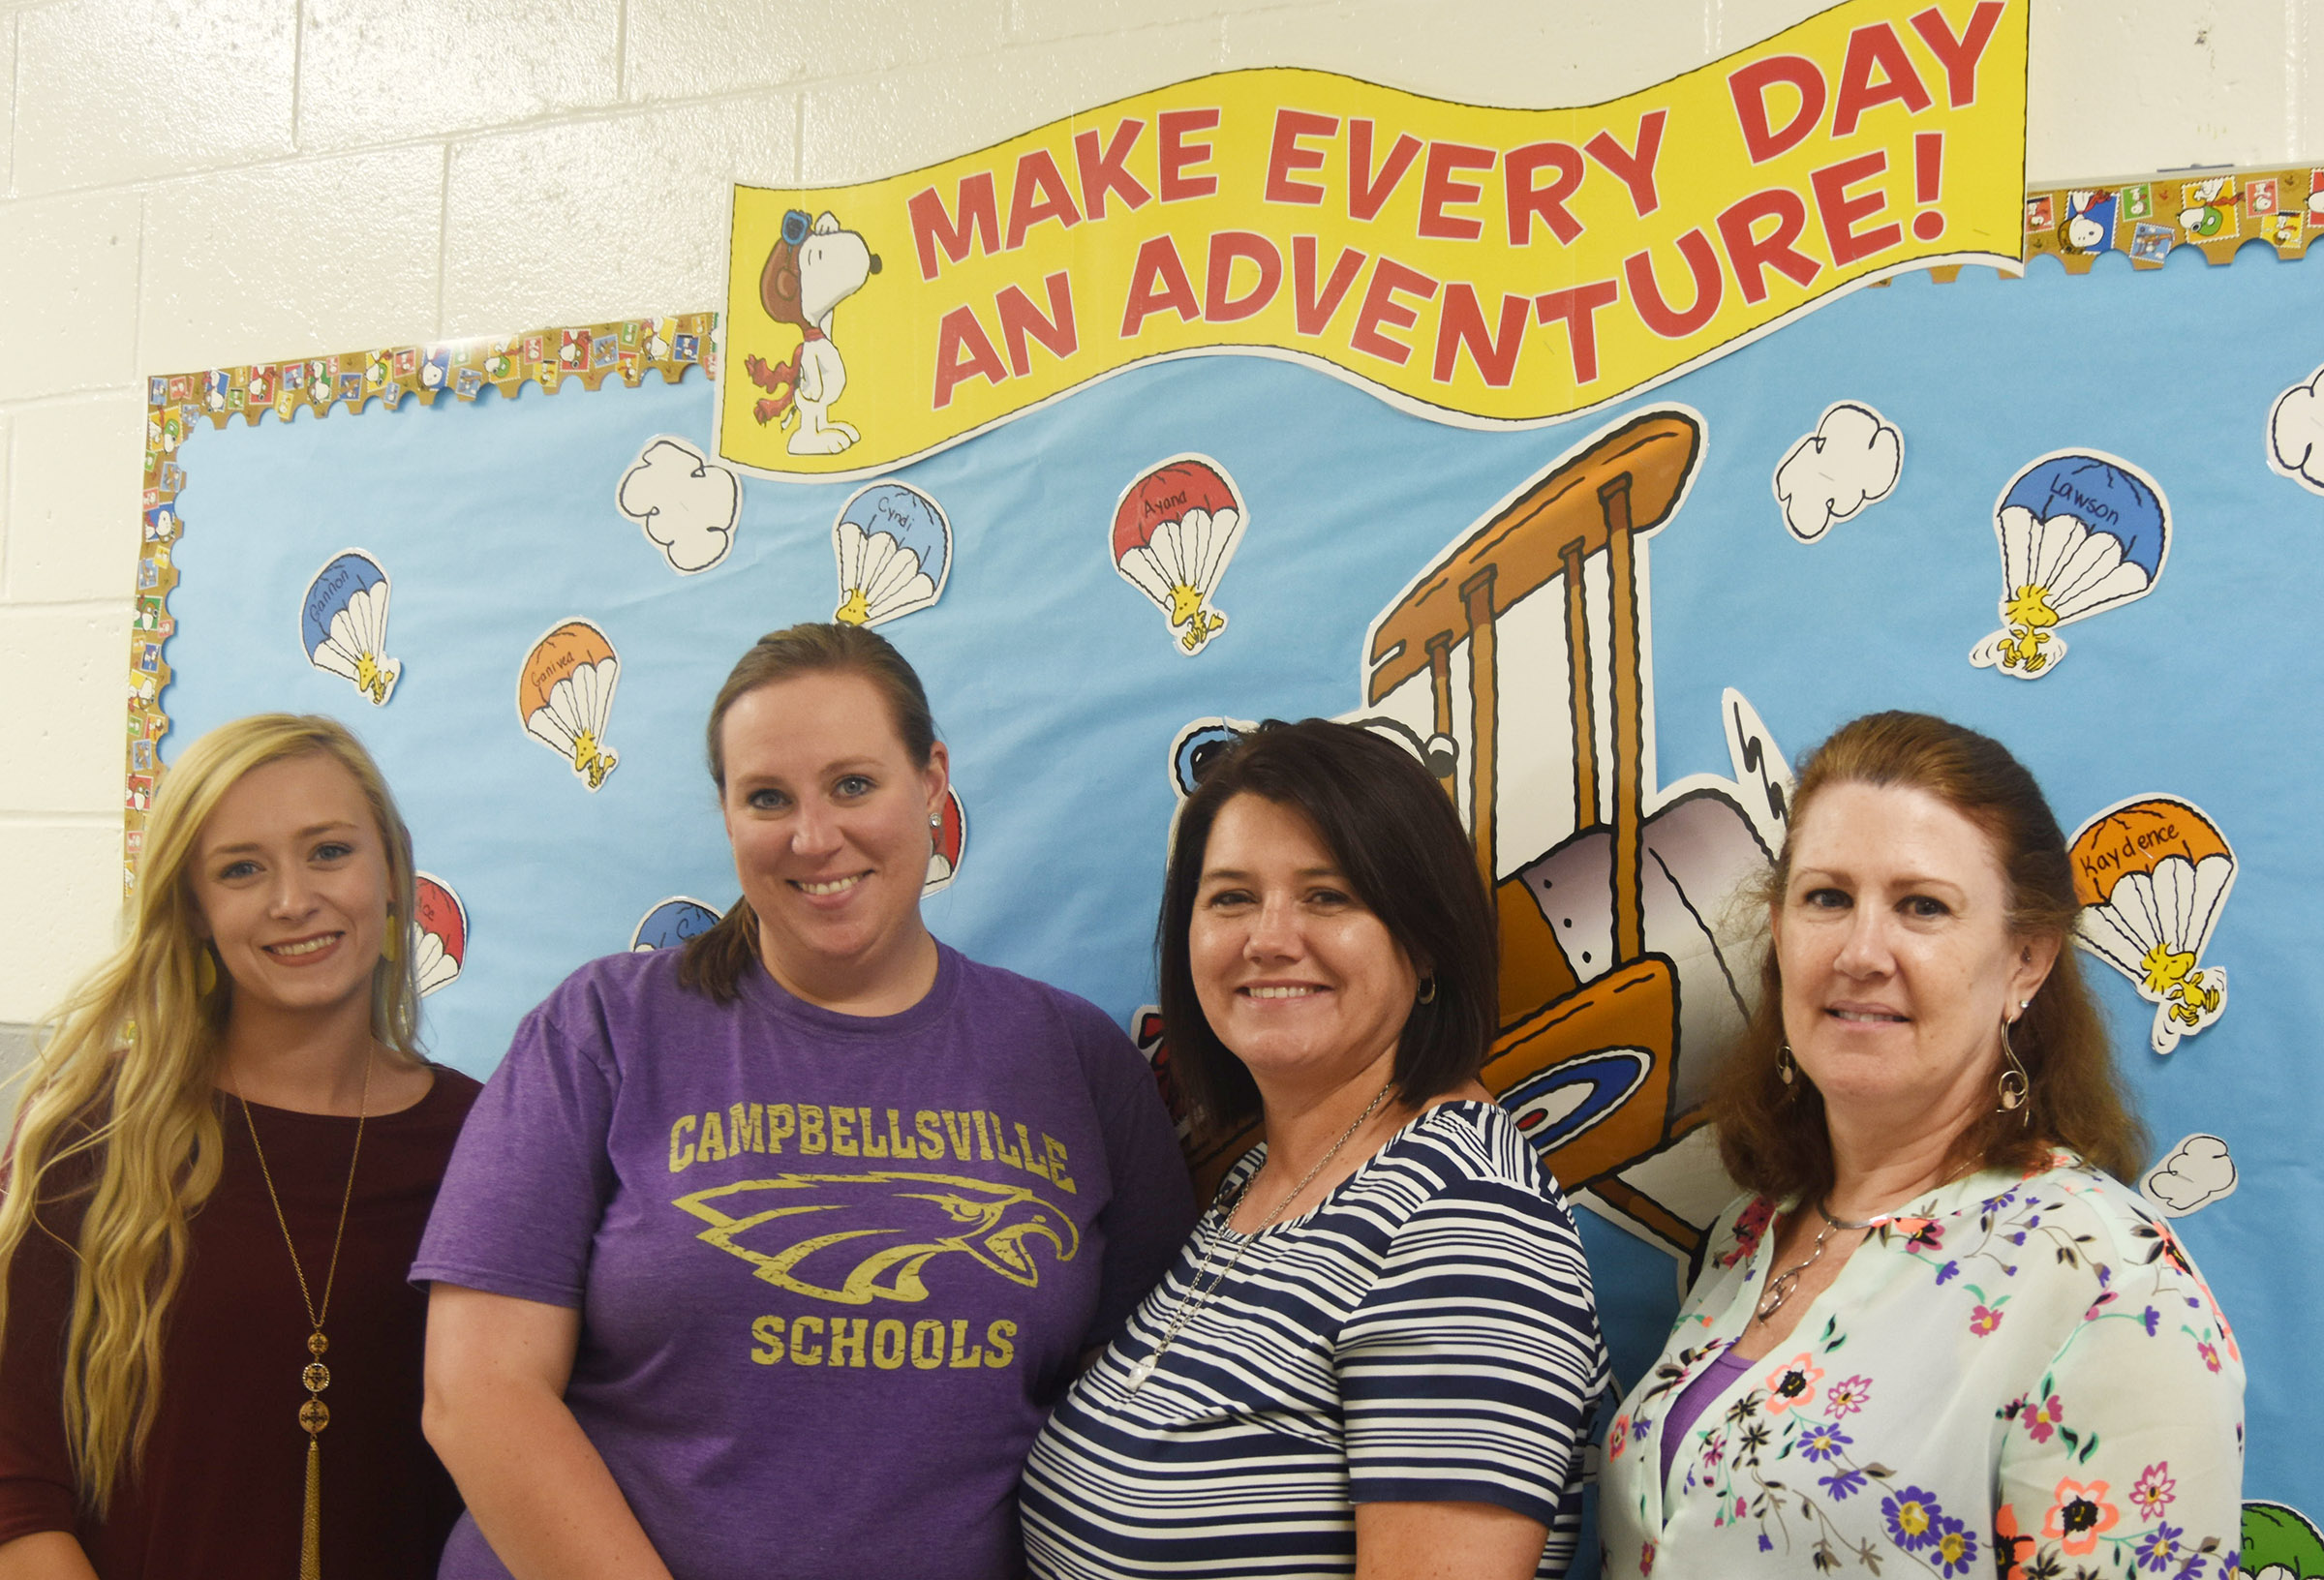 CES preschool classes will begin on Monday, Aug. 20. This year's teachers are Julie Shelton and Denise Spencer, second and third from left, respectively, and assistants Tesa Novak, at left, and Lisa Durham.